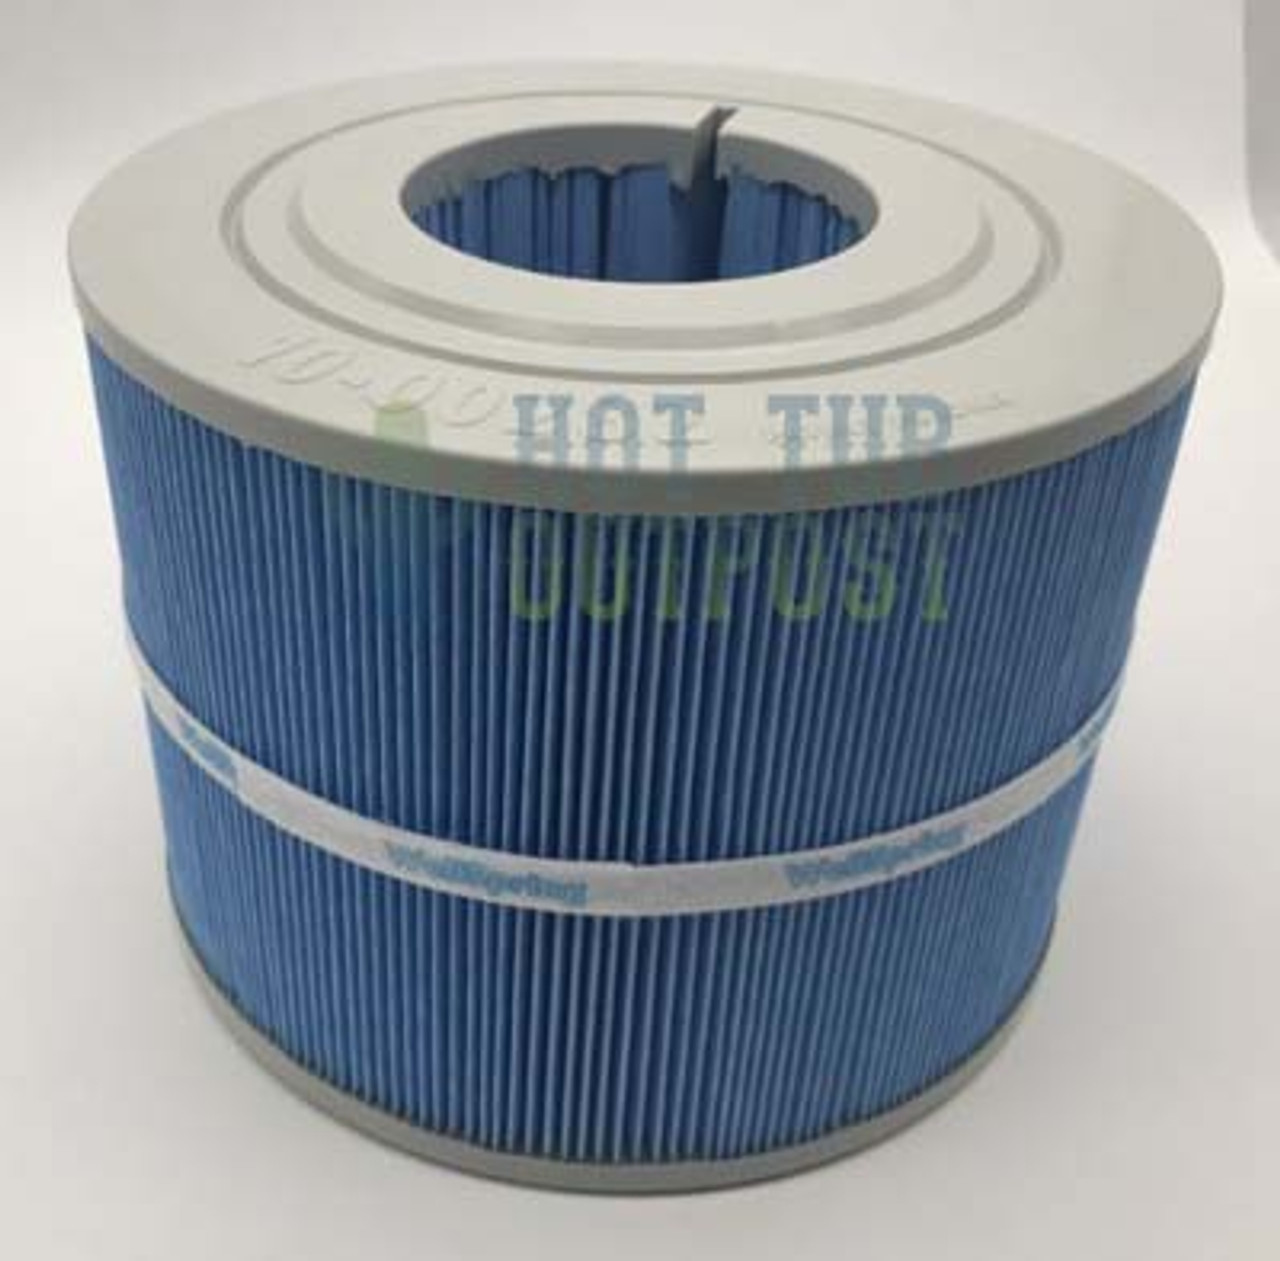 Bullfrog 10-1035 Replacement Spa Filter by Spa and Sauna Parts